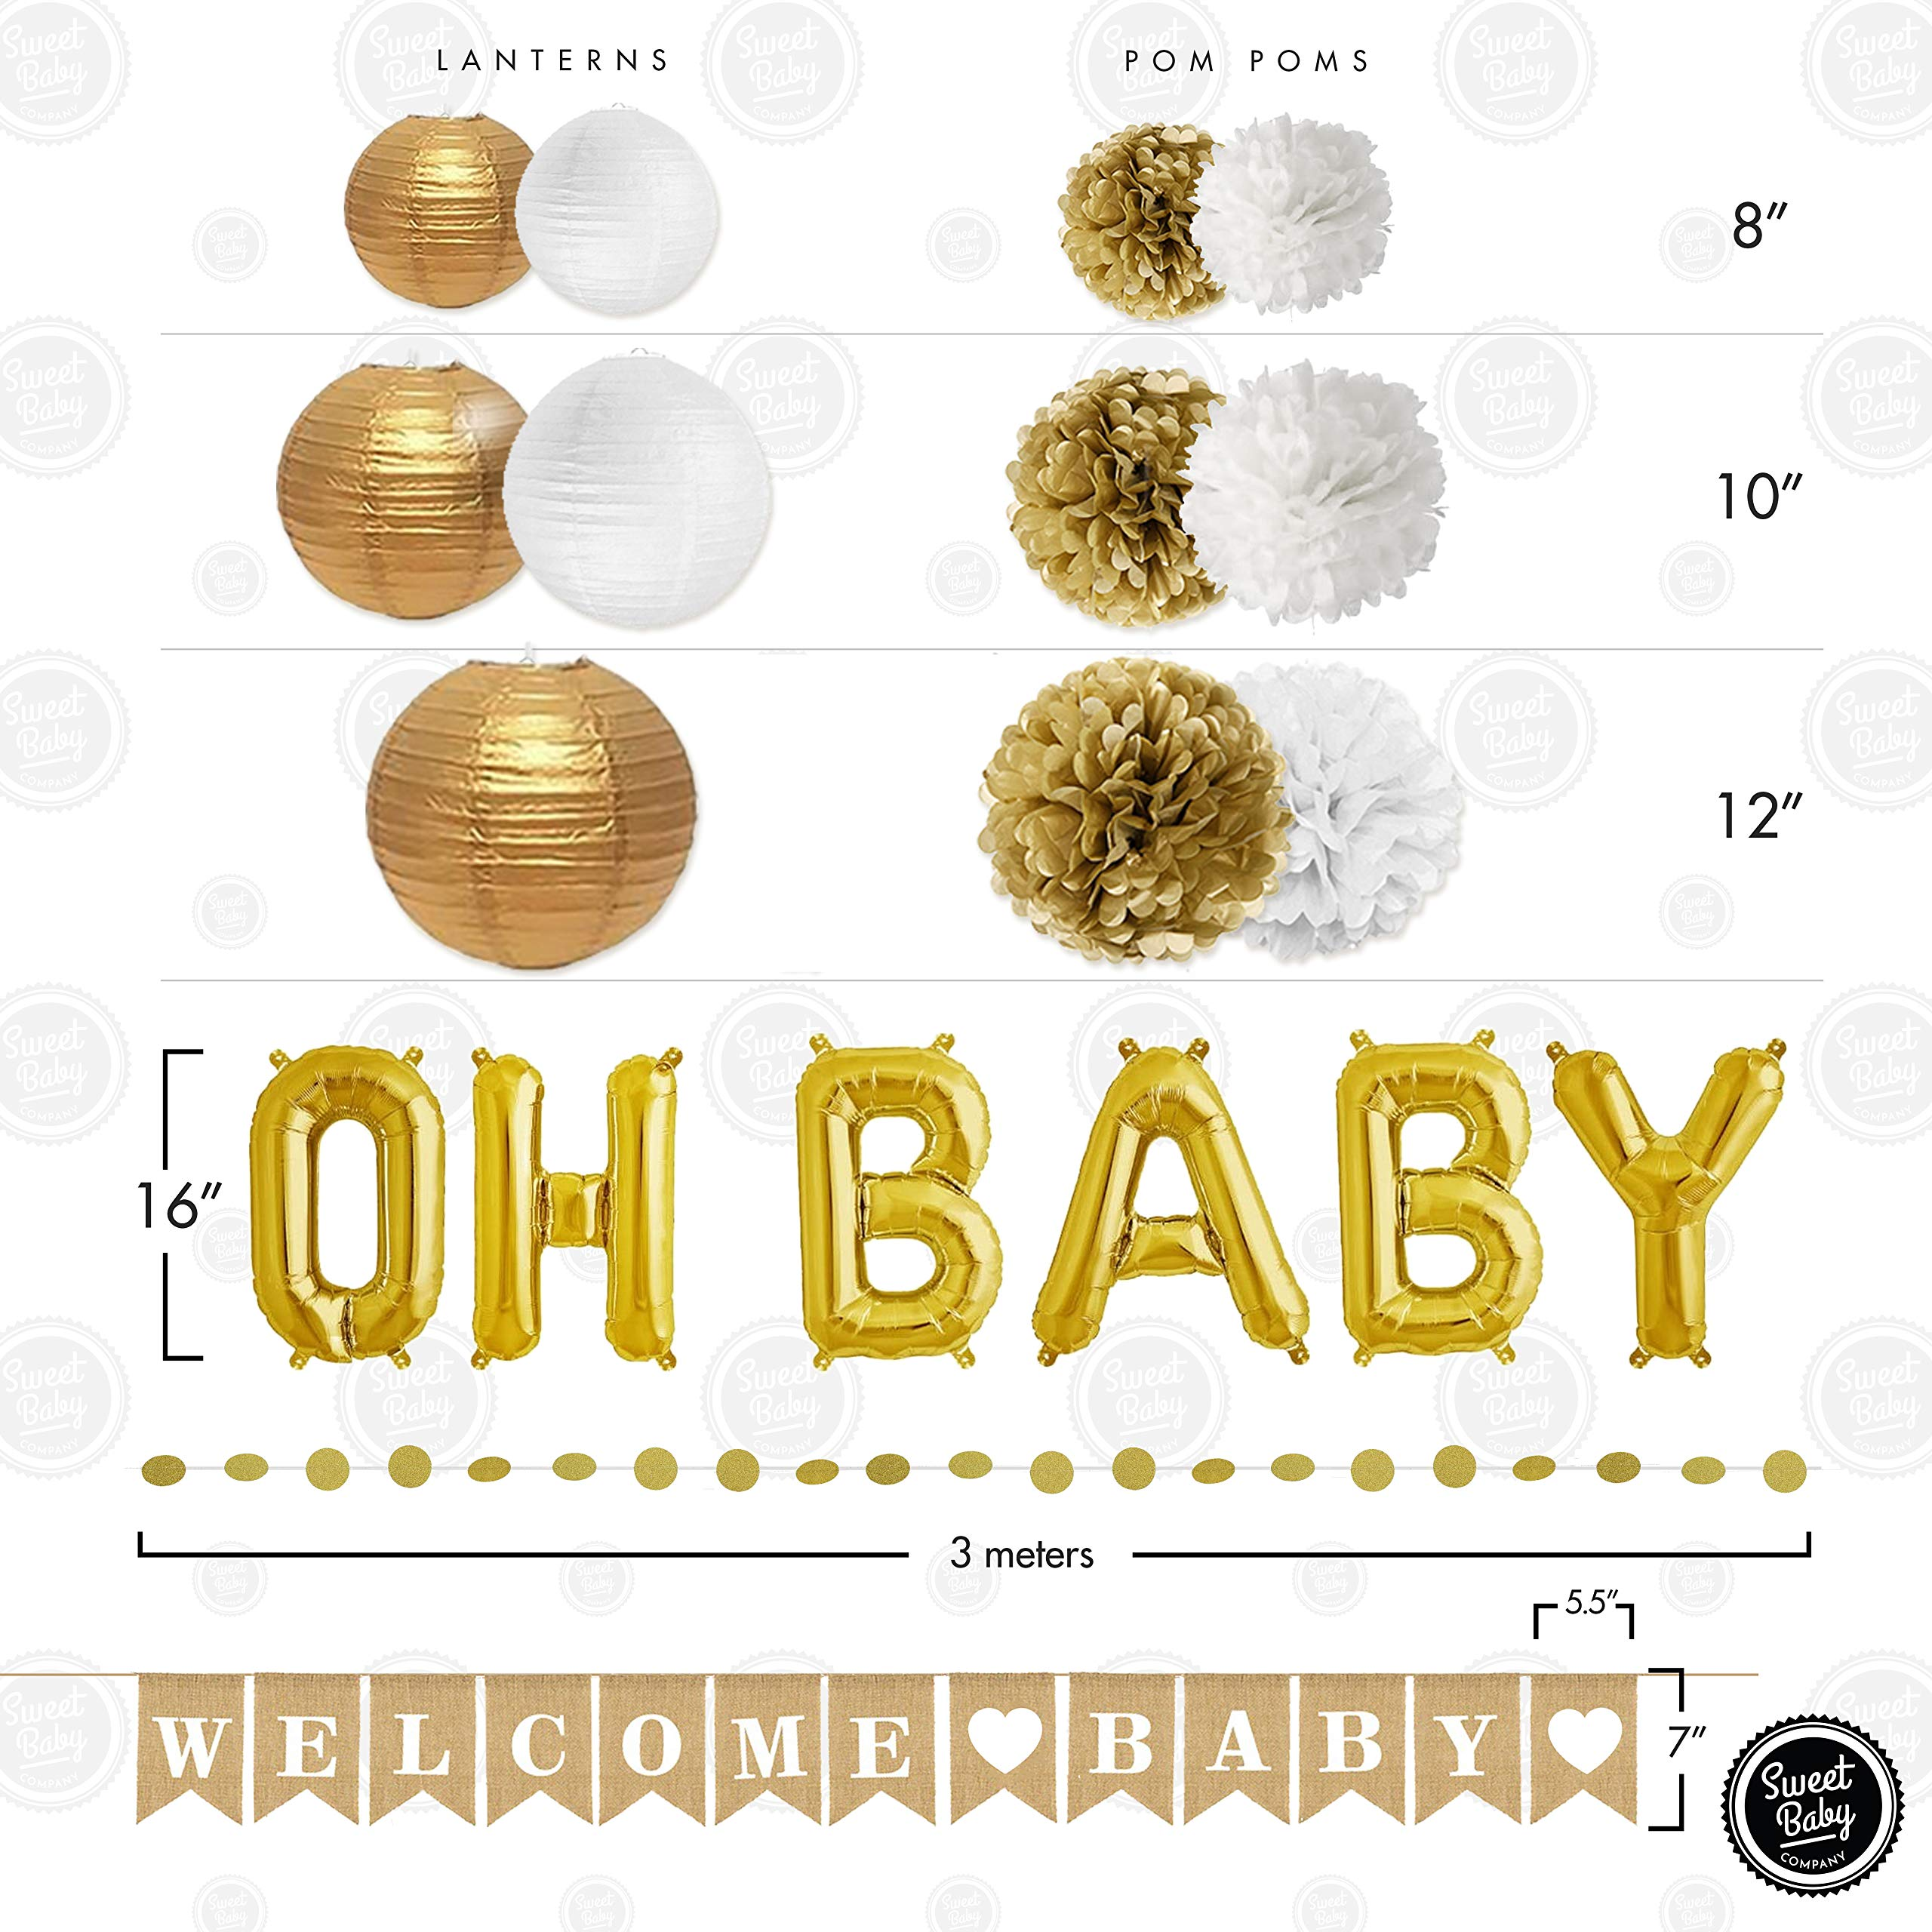 Sweet Baby Co. Baby Shower Decorations Neutral For Boy or Girl With Welcome Baby Banner, Oh Baby Foil Balloon, Paper Lanterns, Tissue Paper Pom Poms, Circle Garland | Rustic Gold and White Gender Neutral Baby Shower Decorations Set by Sweet Baby Company (Image #4)